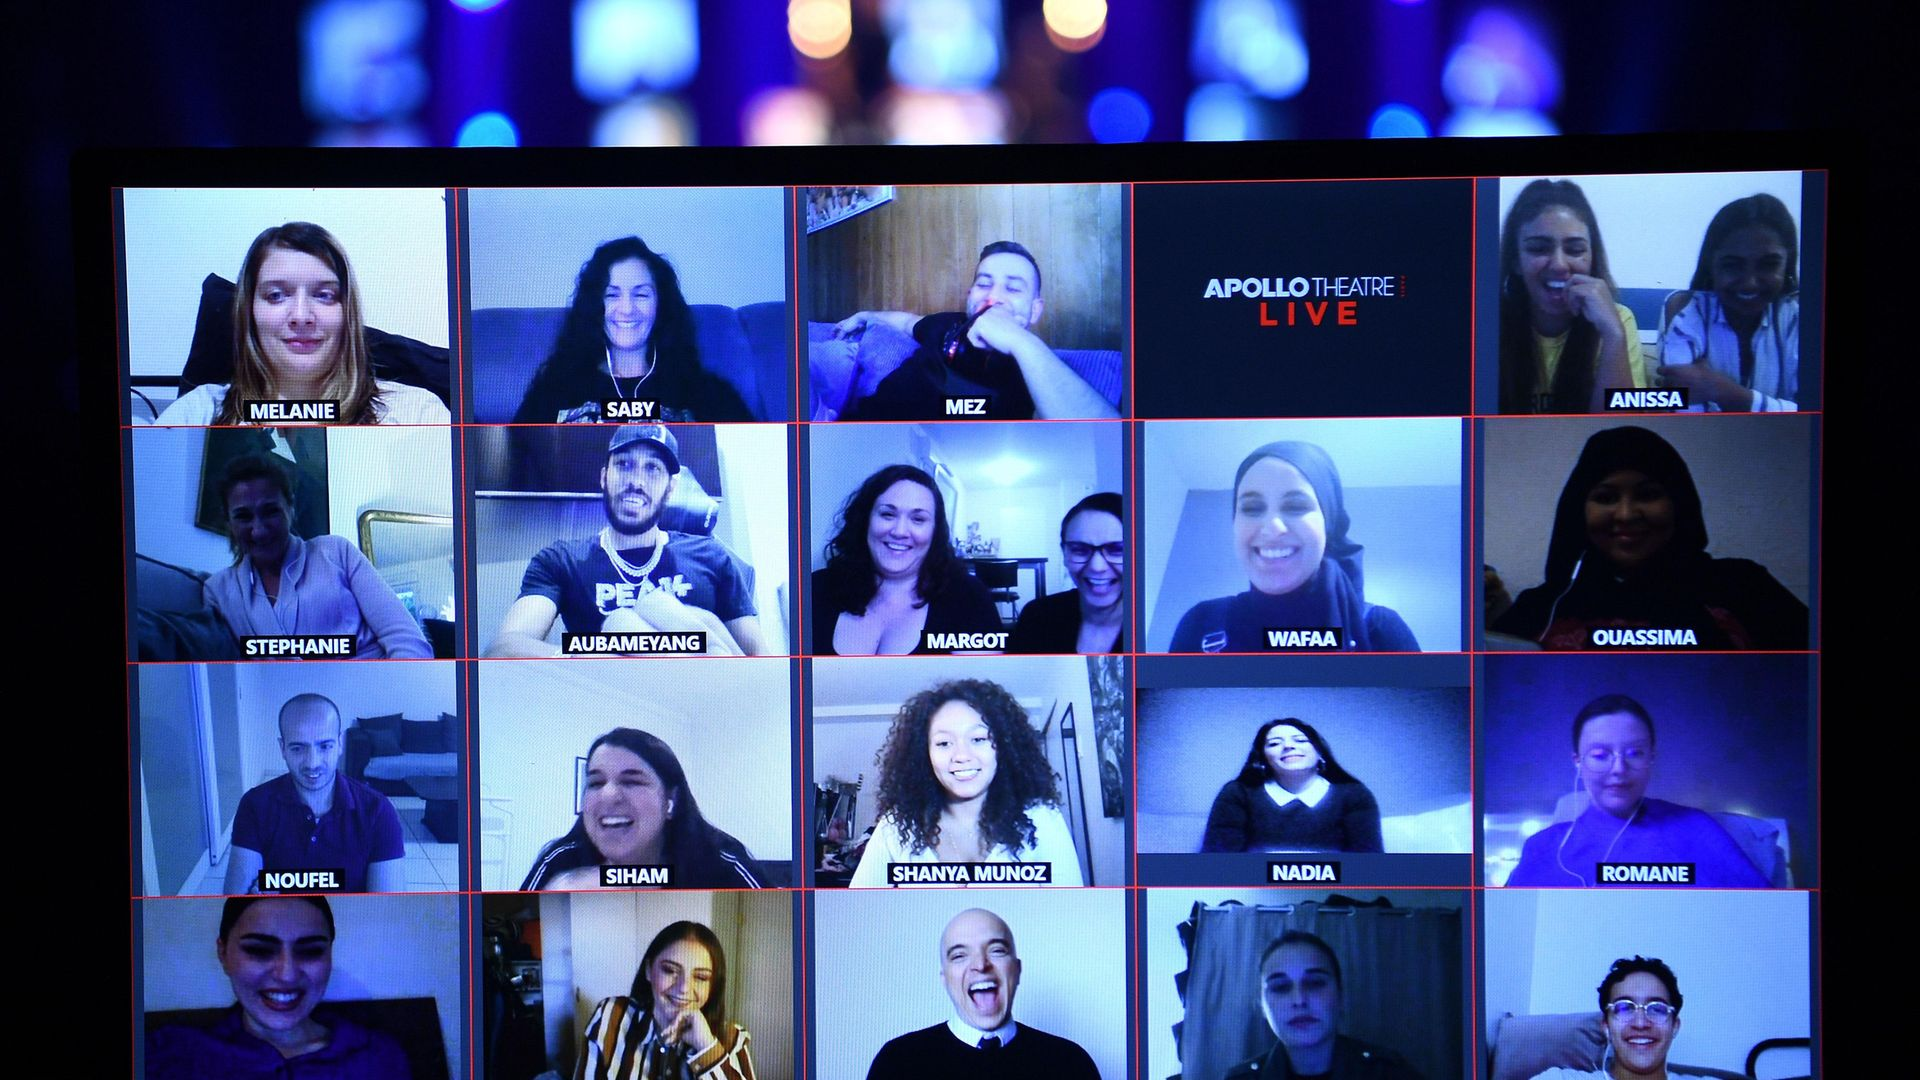 Viewers watch the live streaming of French humorists Othman and Kalvin at the Apollo Theatre in Paris - Credit: AFP via Getty Images